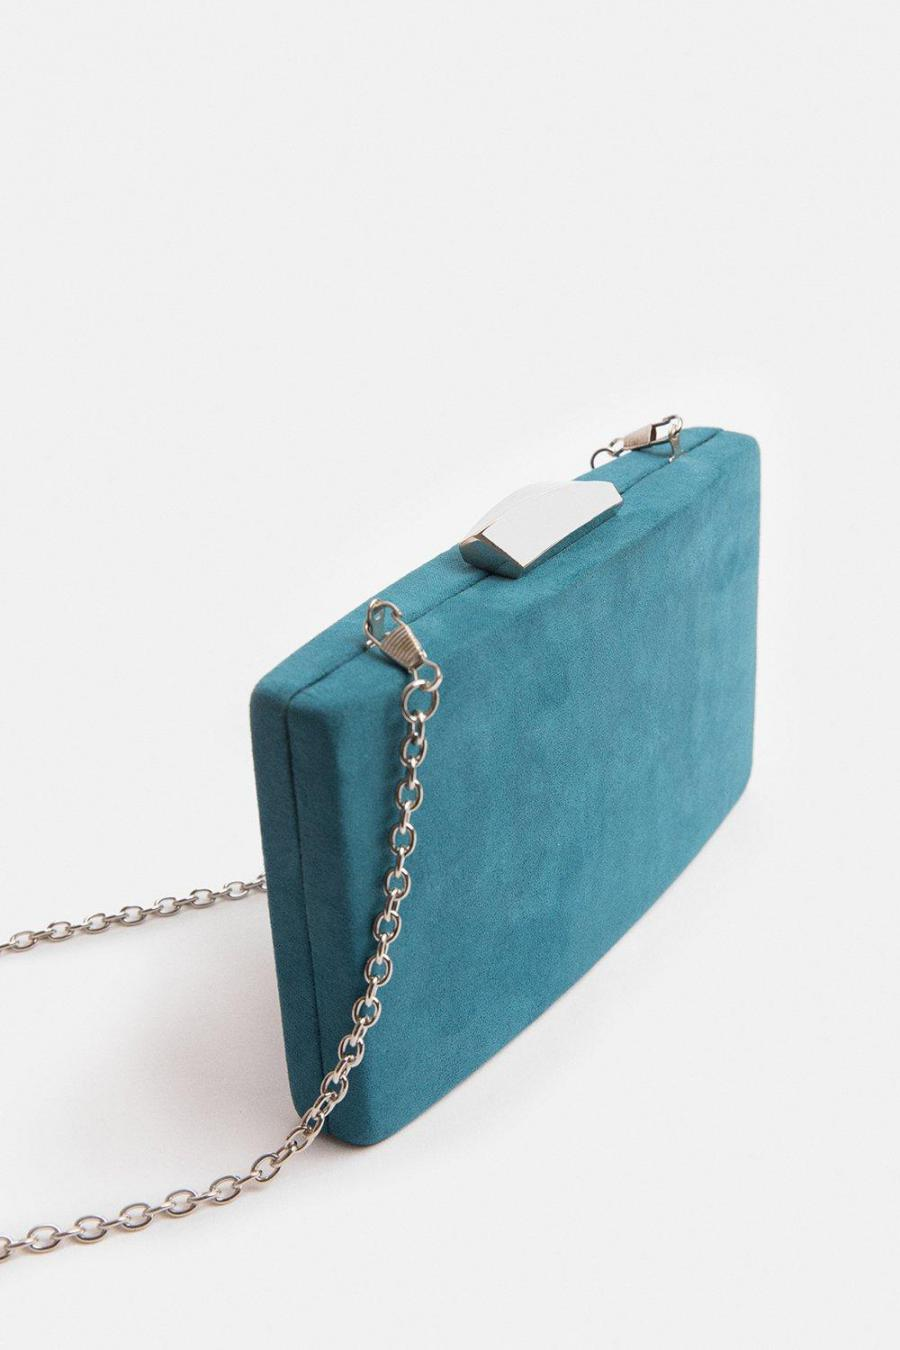 Coast Clutch Bag | Womens Boxy Clutch Bag Teal